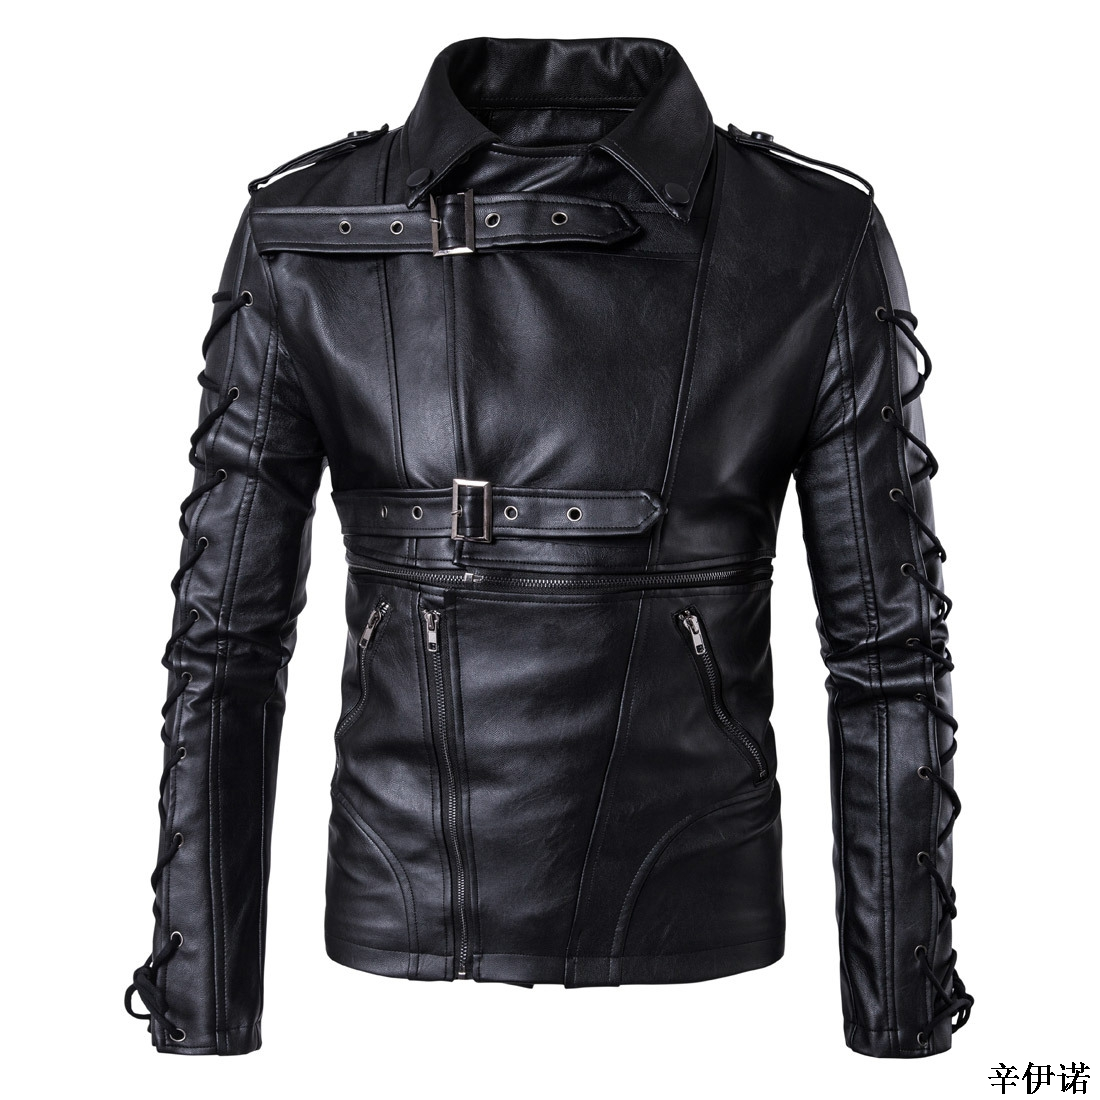 04b16749f US $42.9 |Hot M 5XL Men's autumn winter brand rock leather jacket,  motorcycle jacket, men leather clothes Slim mens leather jacket Coats-in  Jackets ...